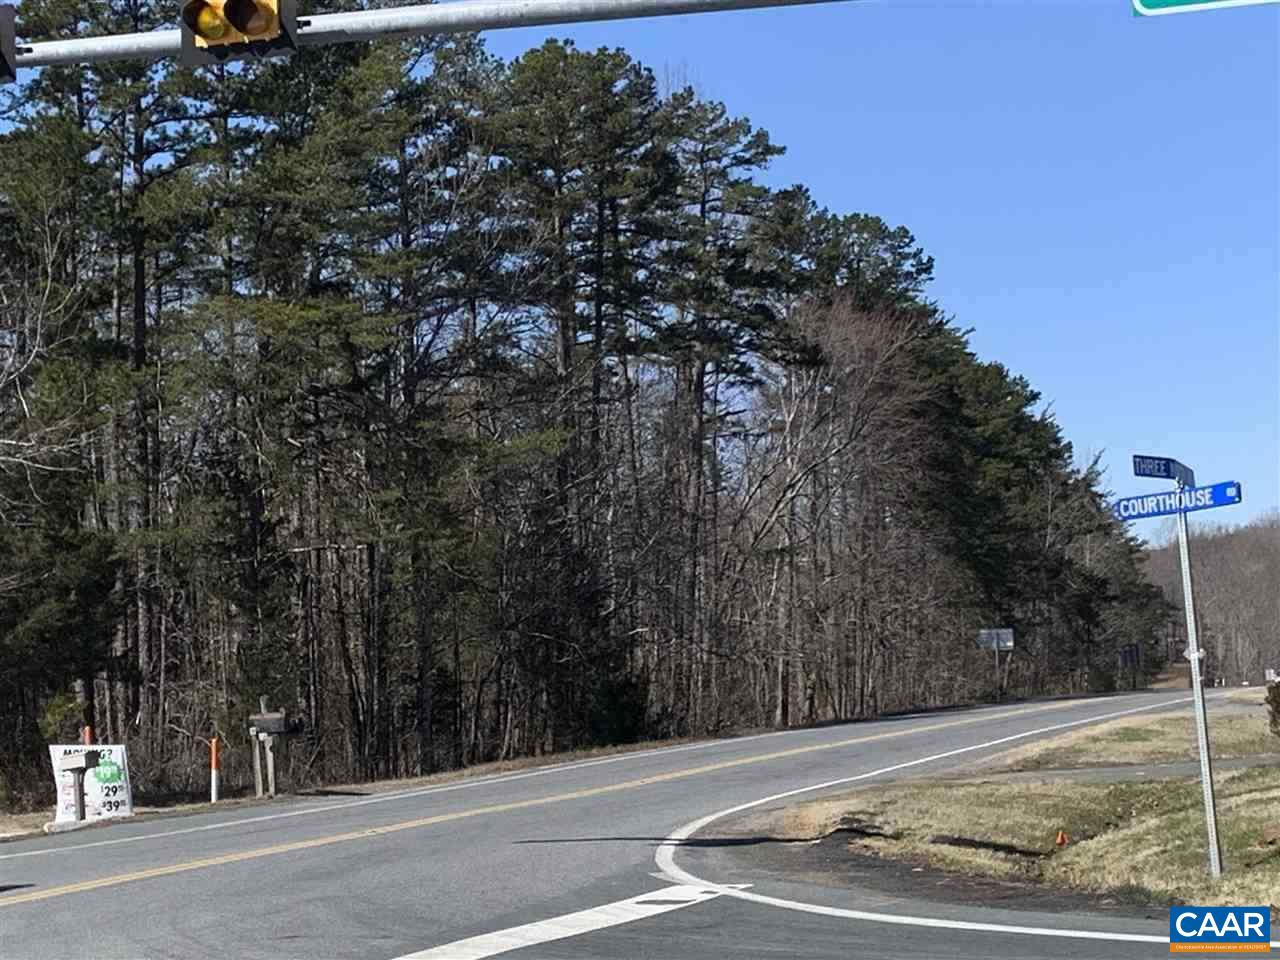 Prime commercial land in Ferncliff Growth Area with long frontage on US 250/Three Notch Road.  Great visibility from Courthouse Road (208) Three Notch Road (US 250) intersection.  Zone C2 w/ county water line and electricity on property plus access to county sewer.  Firefly High Speed Internet coming to all commercial & residential sites in Louisa County.   Great access to I-64.